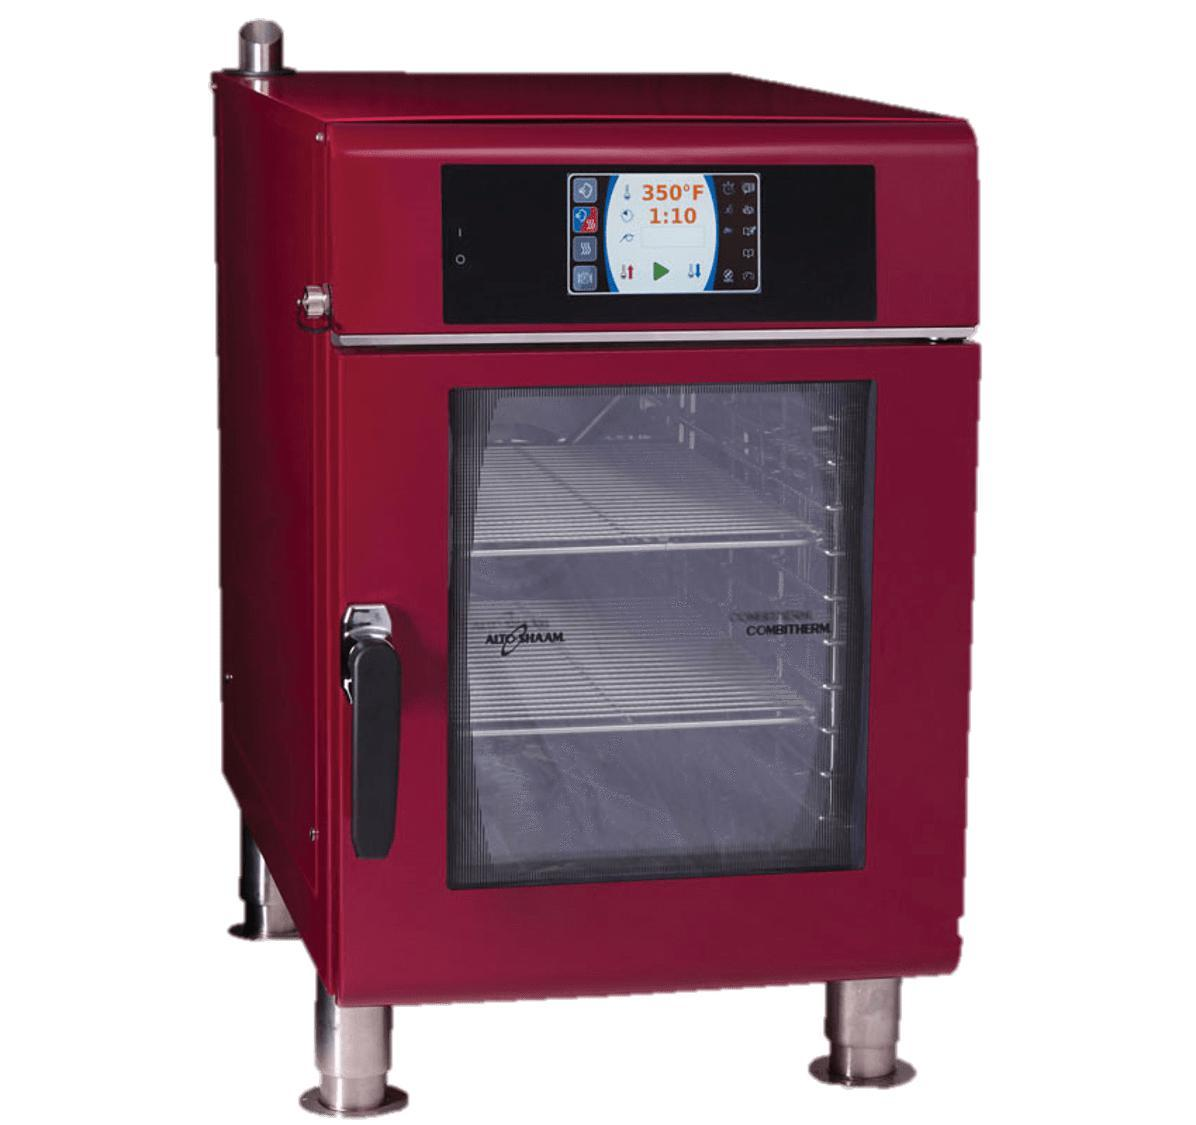 Alto-Shaam CTX4-10EC Combitherm Electric Combi Oven, Burgundy